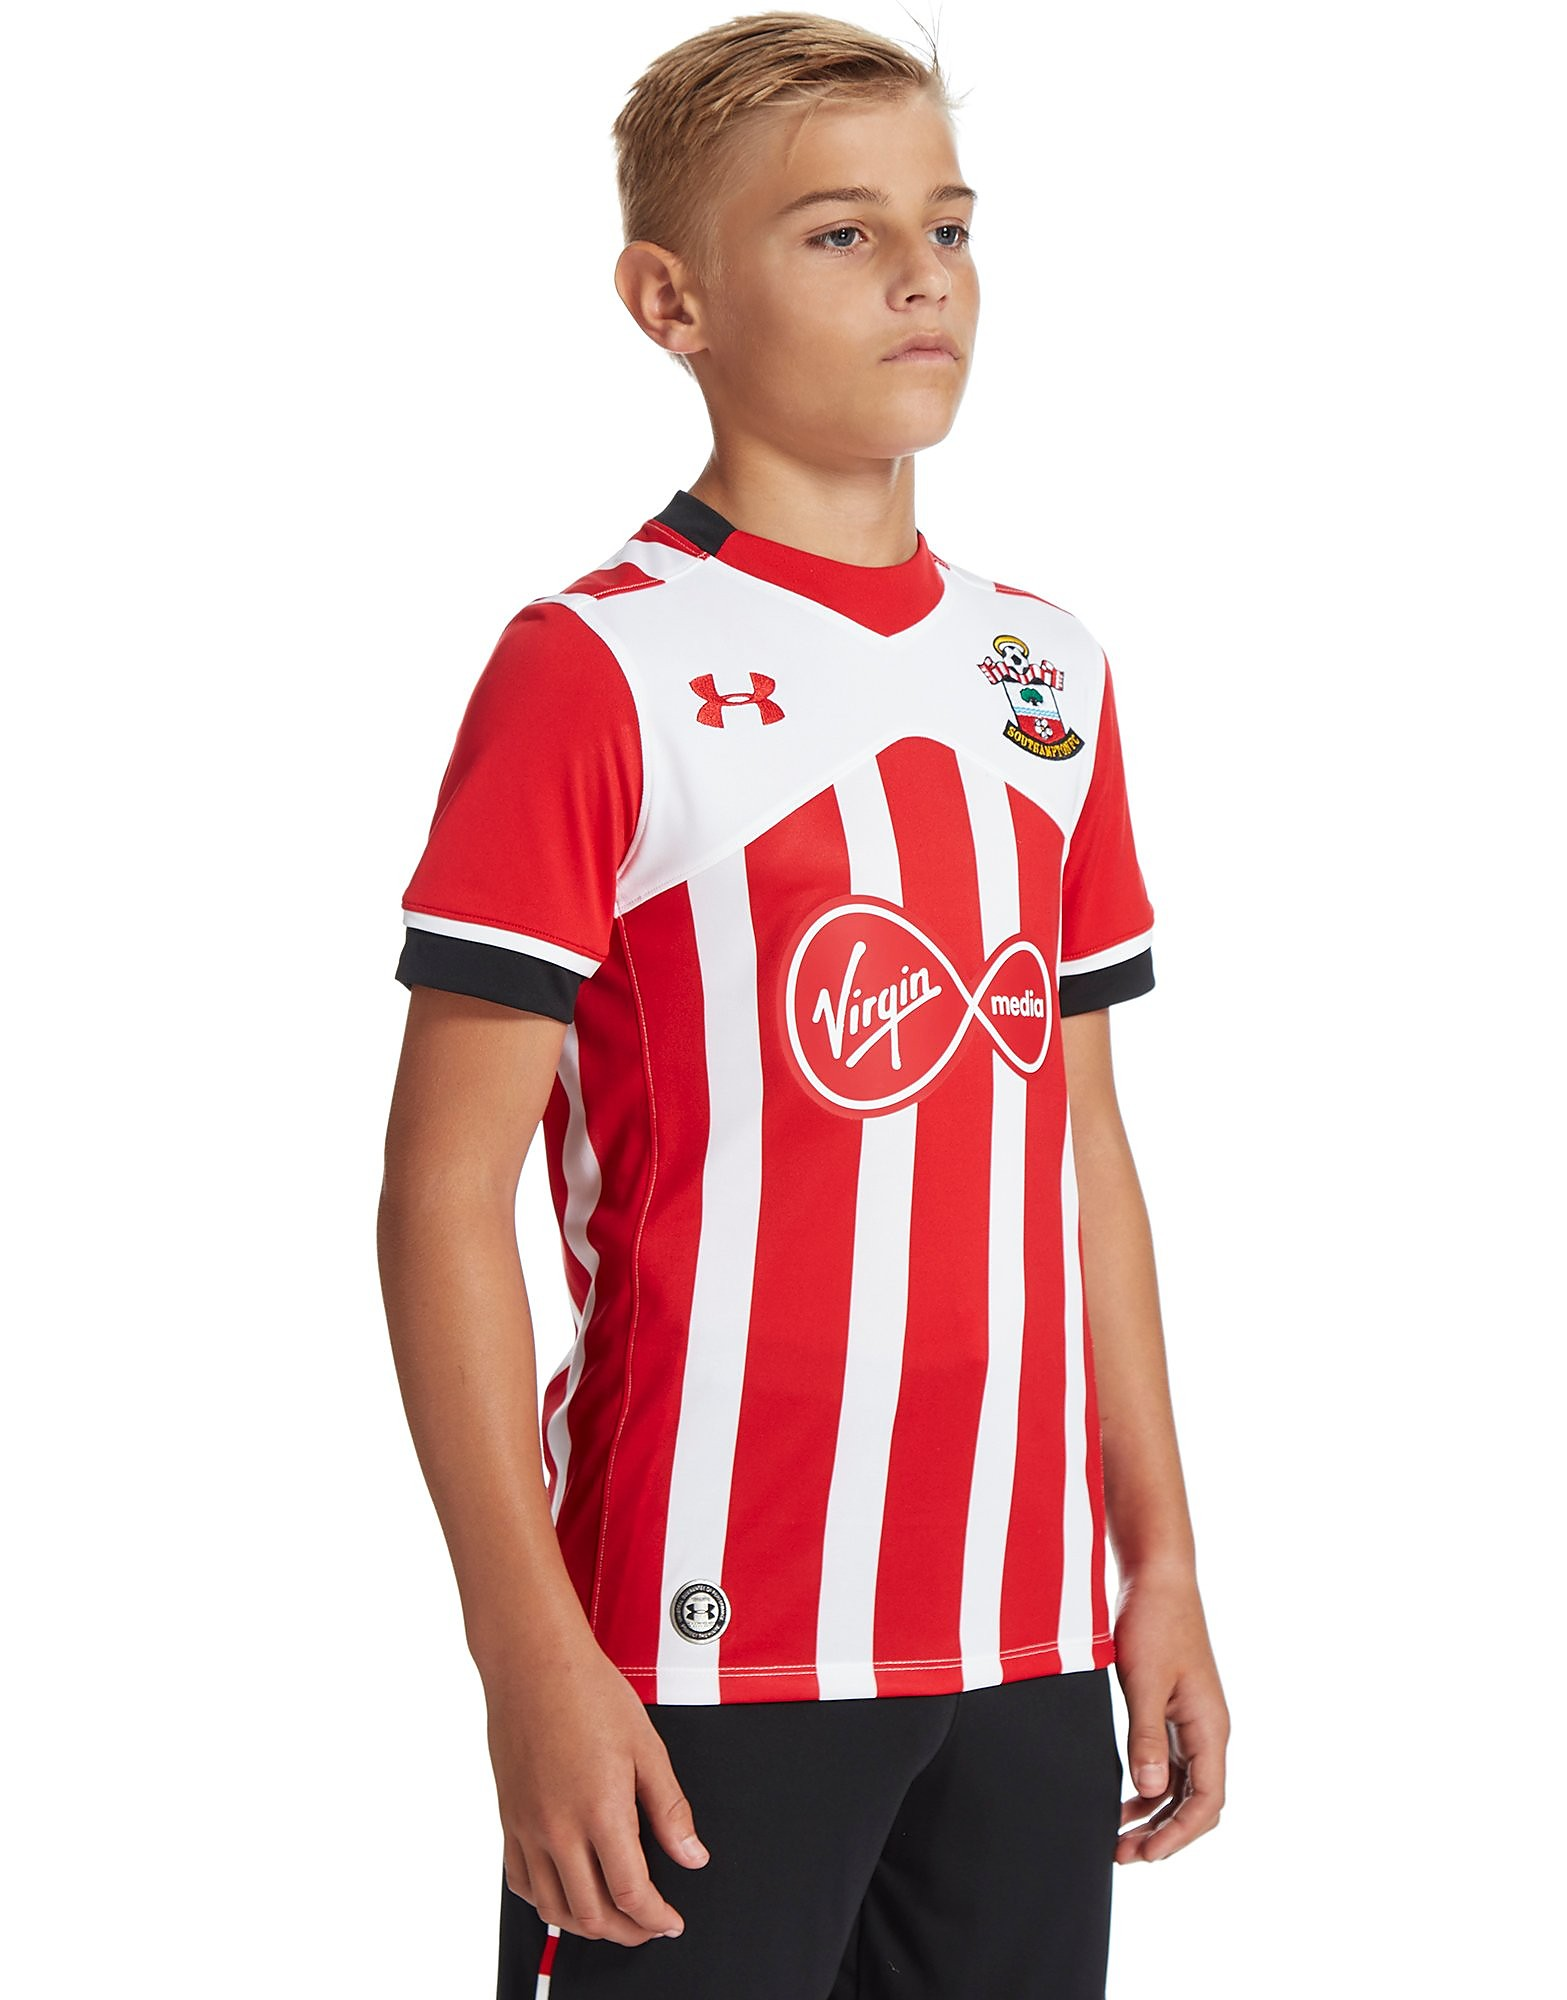 Under Armour Southampton FC 2016/17 Home Shirt Junior